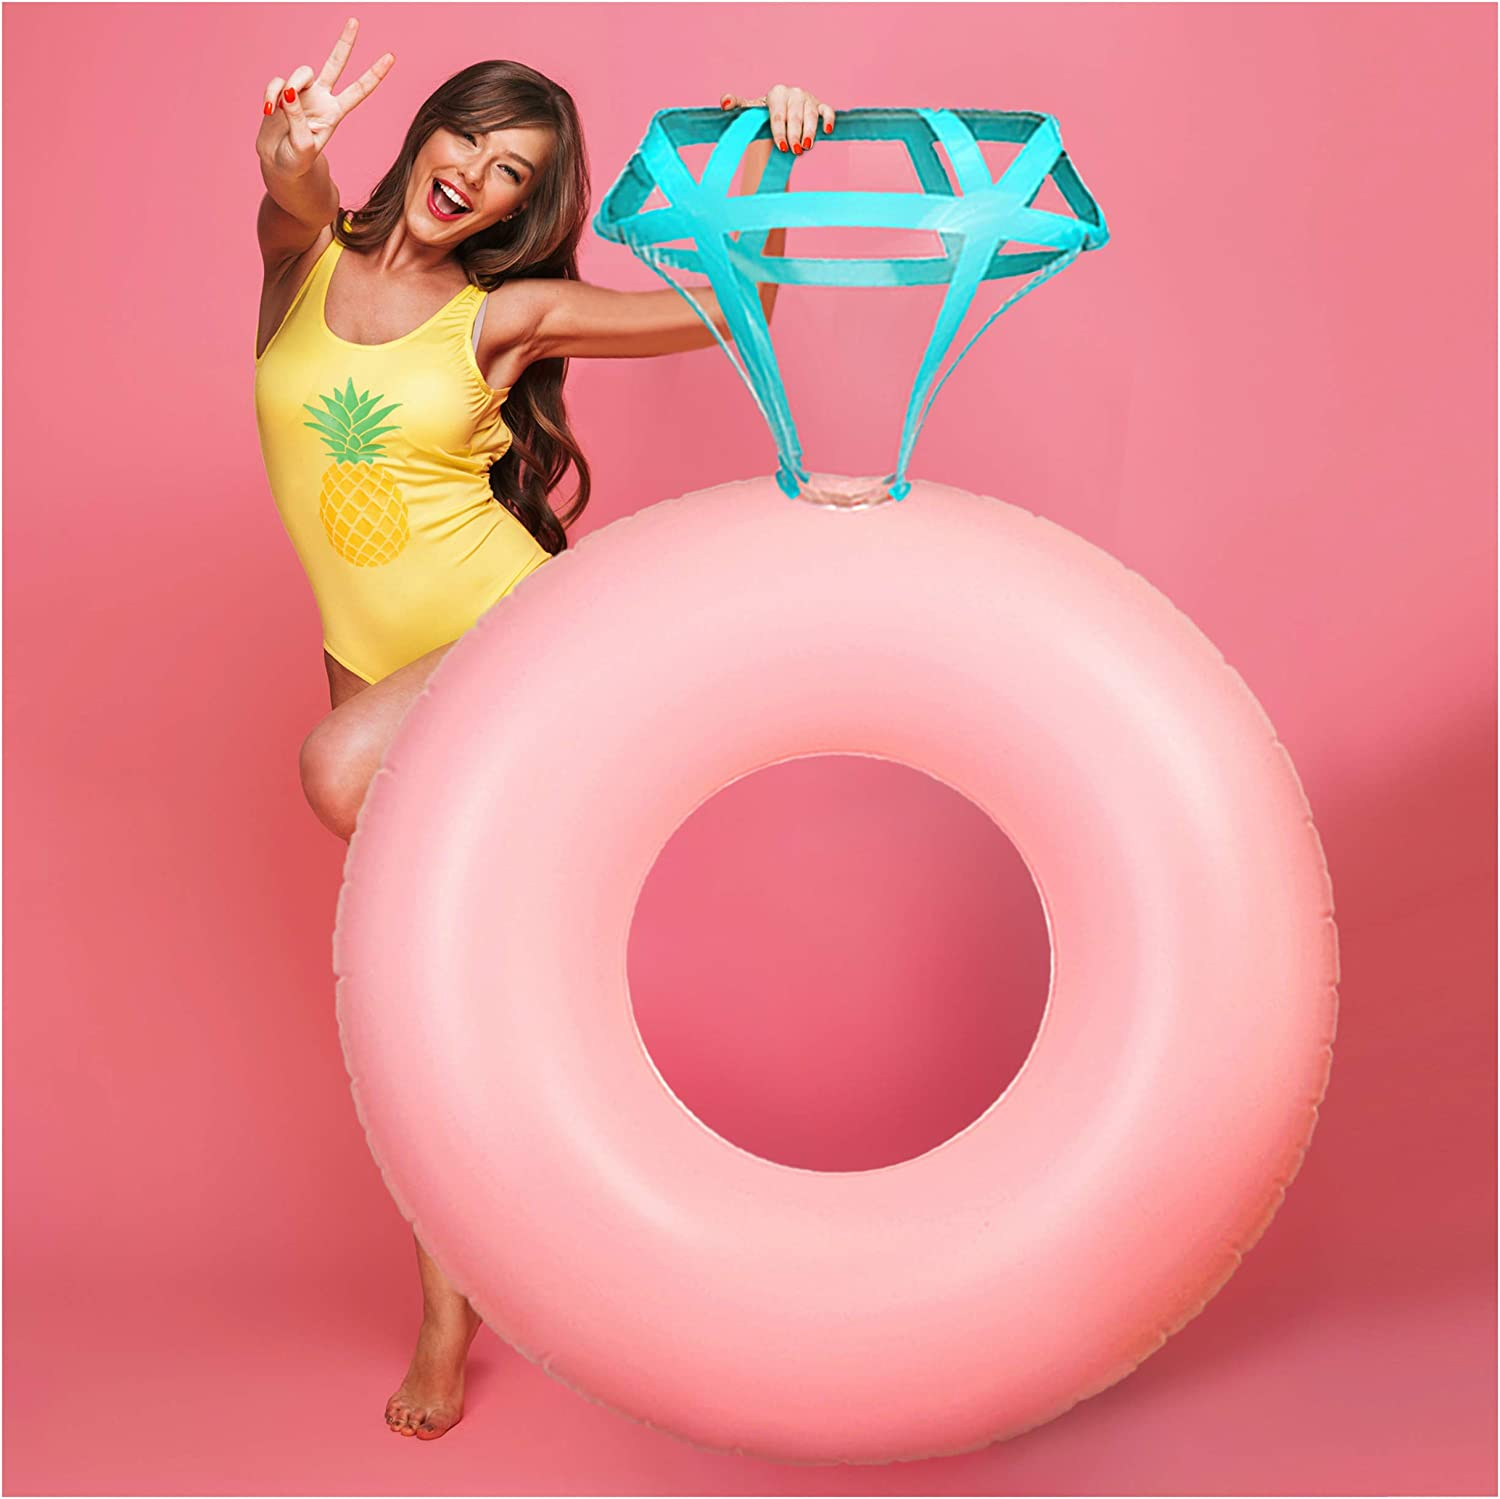 Amazon.com: J&A Homes - Flotador de piscina con anillo de ...